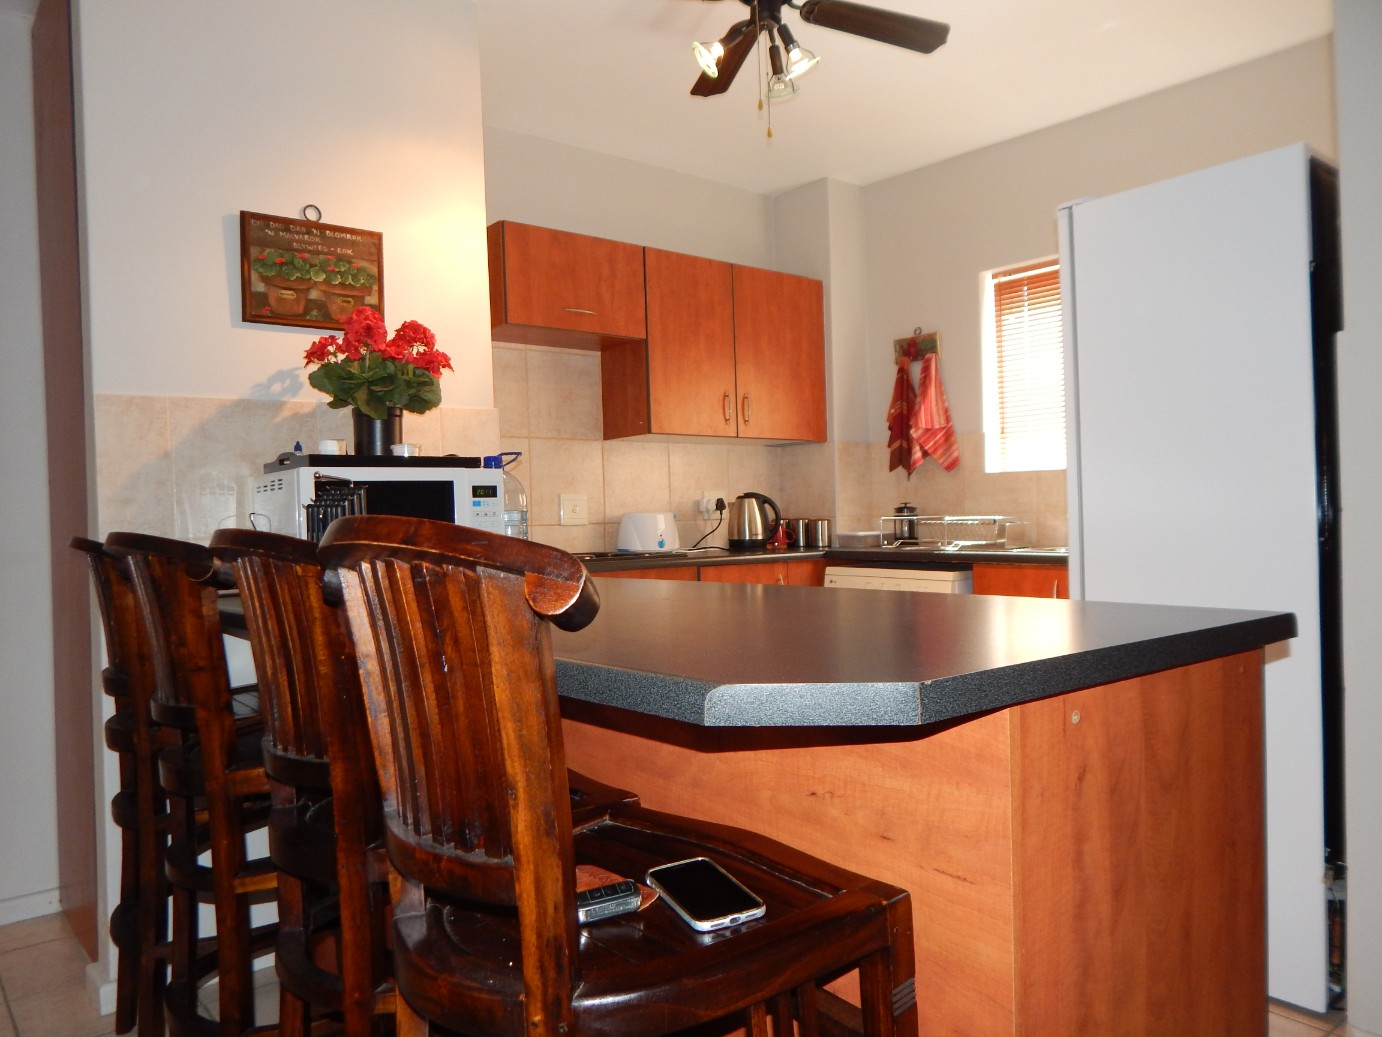 3 Bedroom Apartment for sale in Diaz Beach ENT0080239 : photo#4